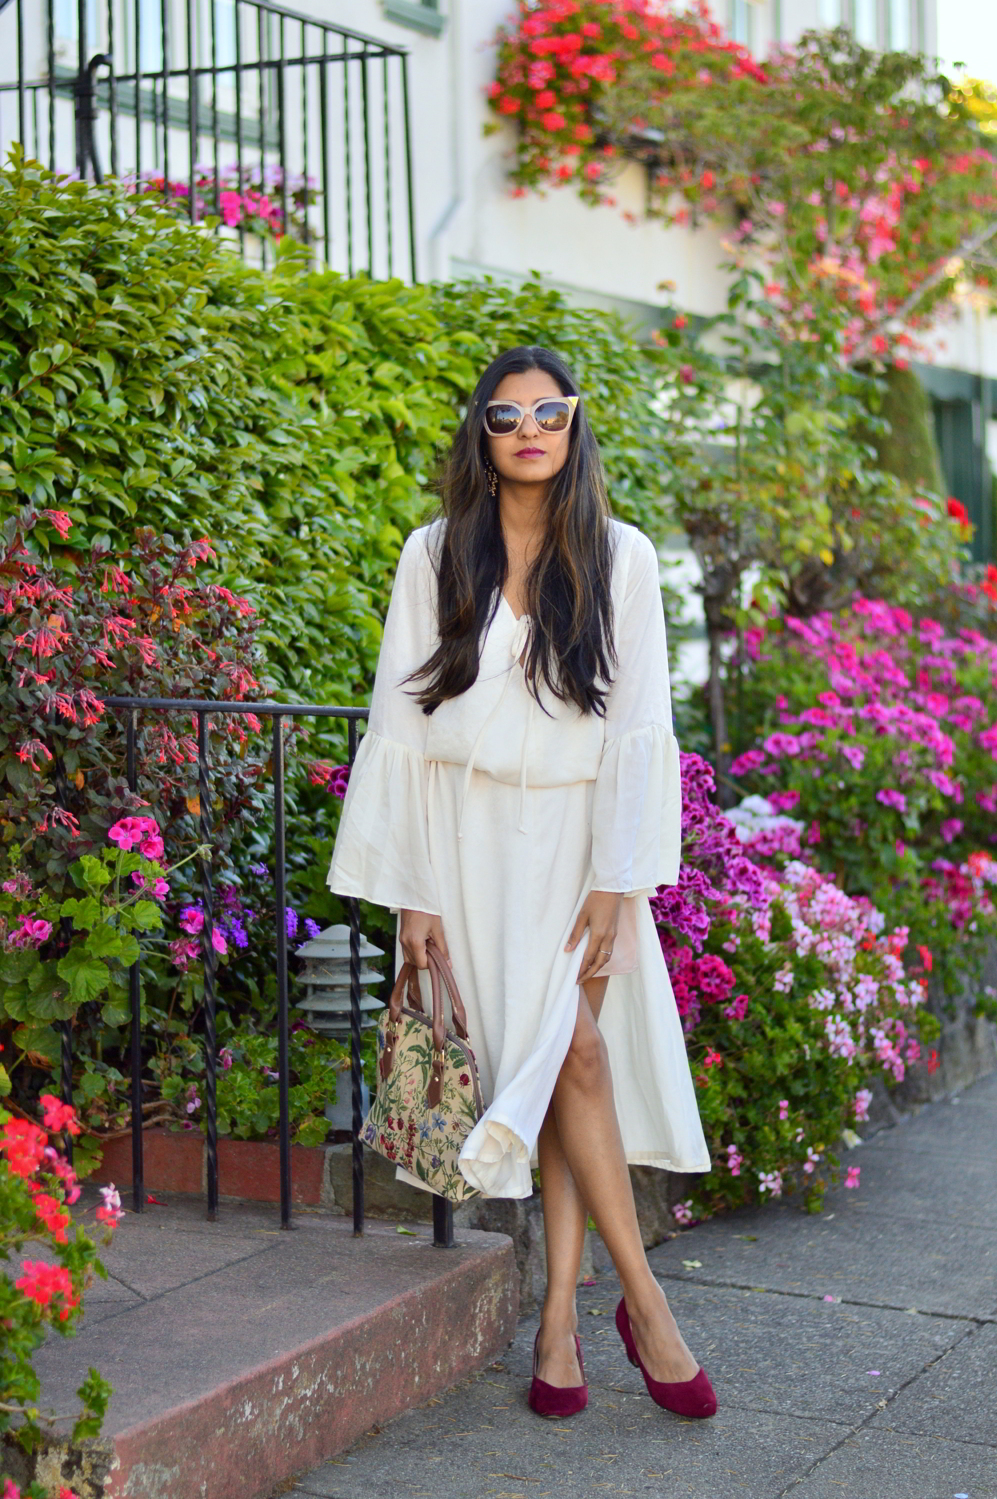 bell-sleeves-white-summer-style-blogger-outfit-dress-floral-bag 1